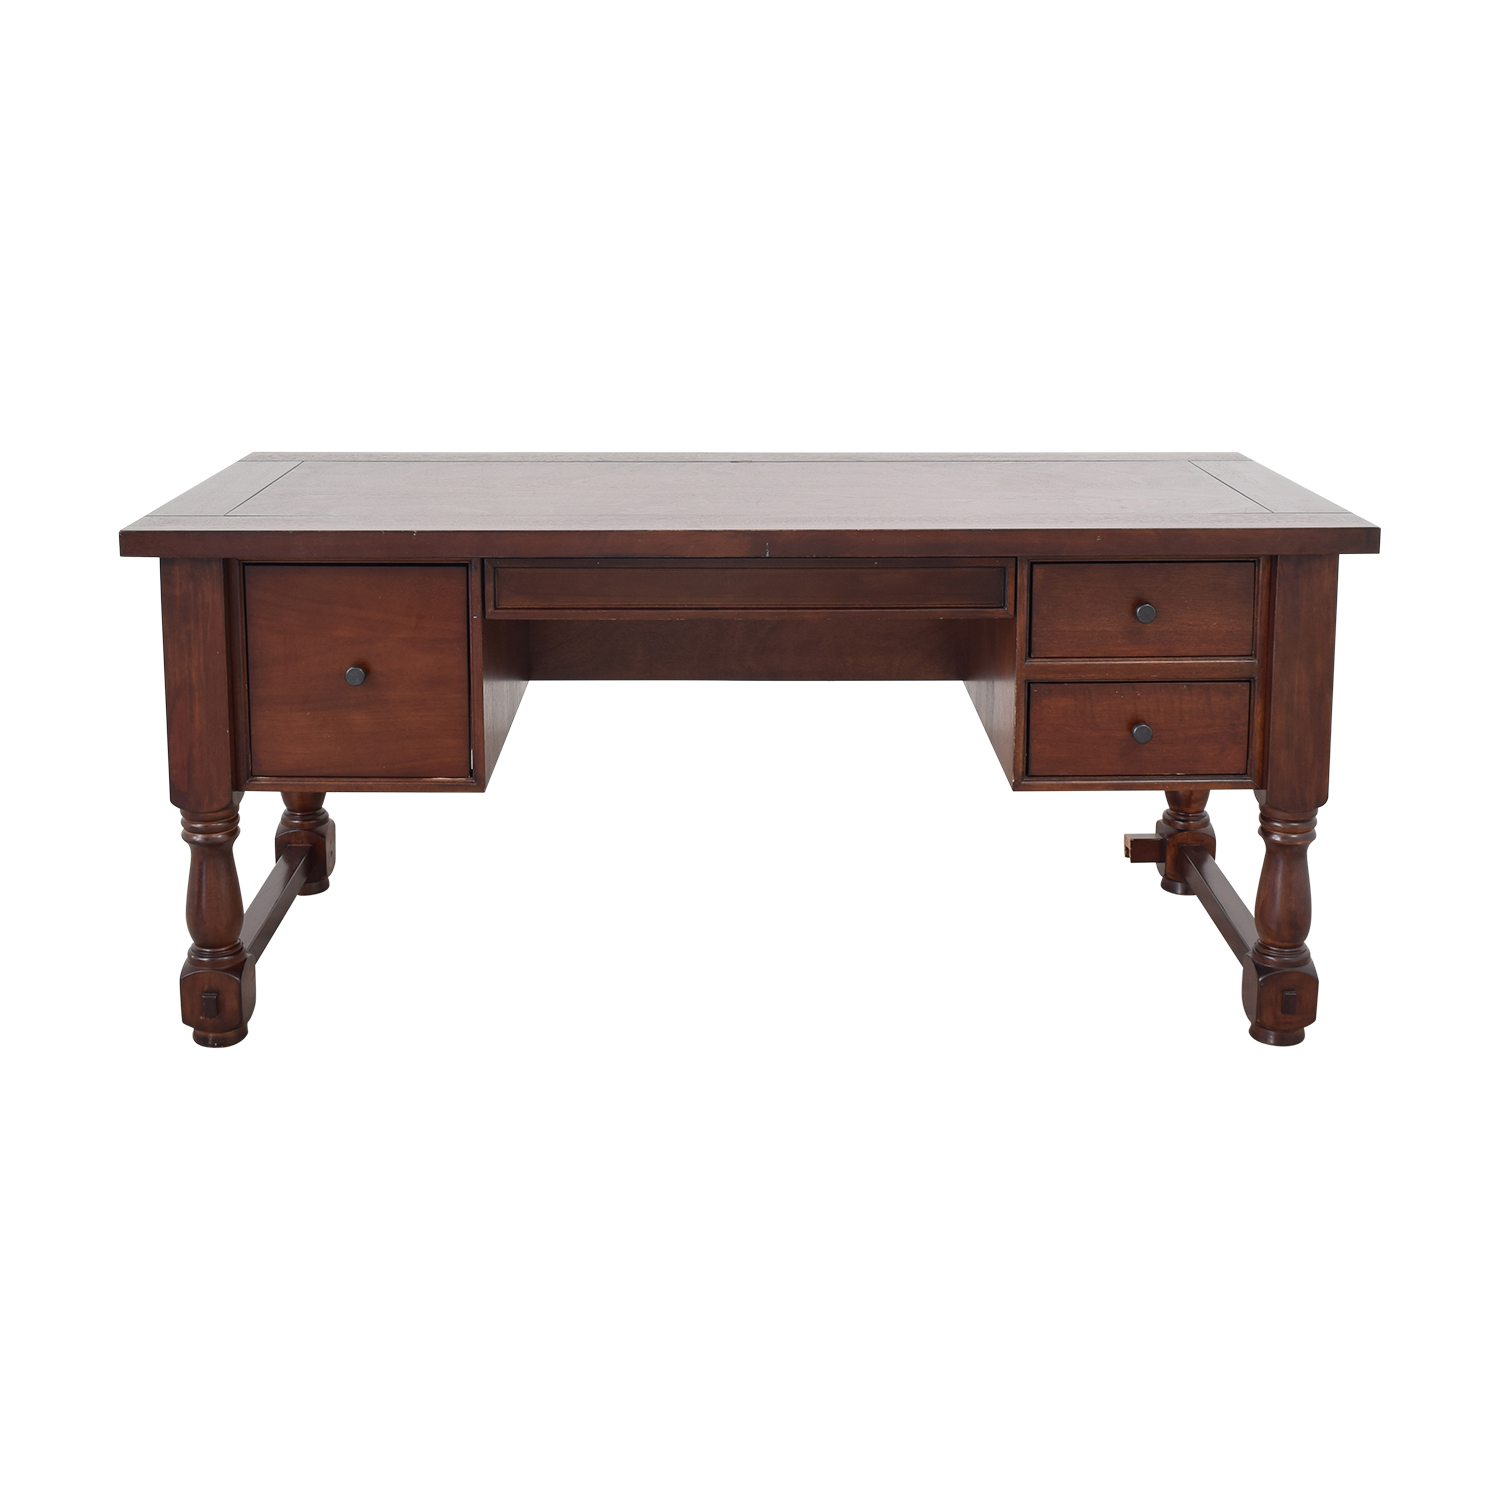 Pottery Barn Pottery Barn Executive Desk price